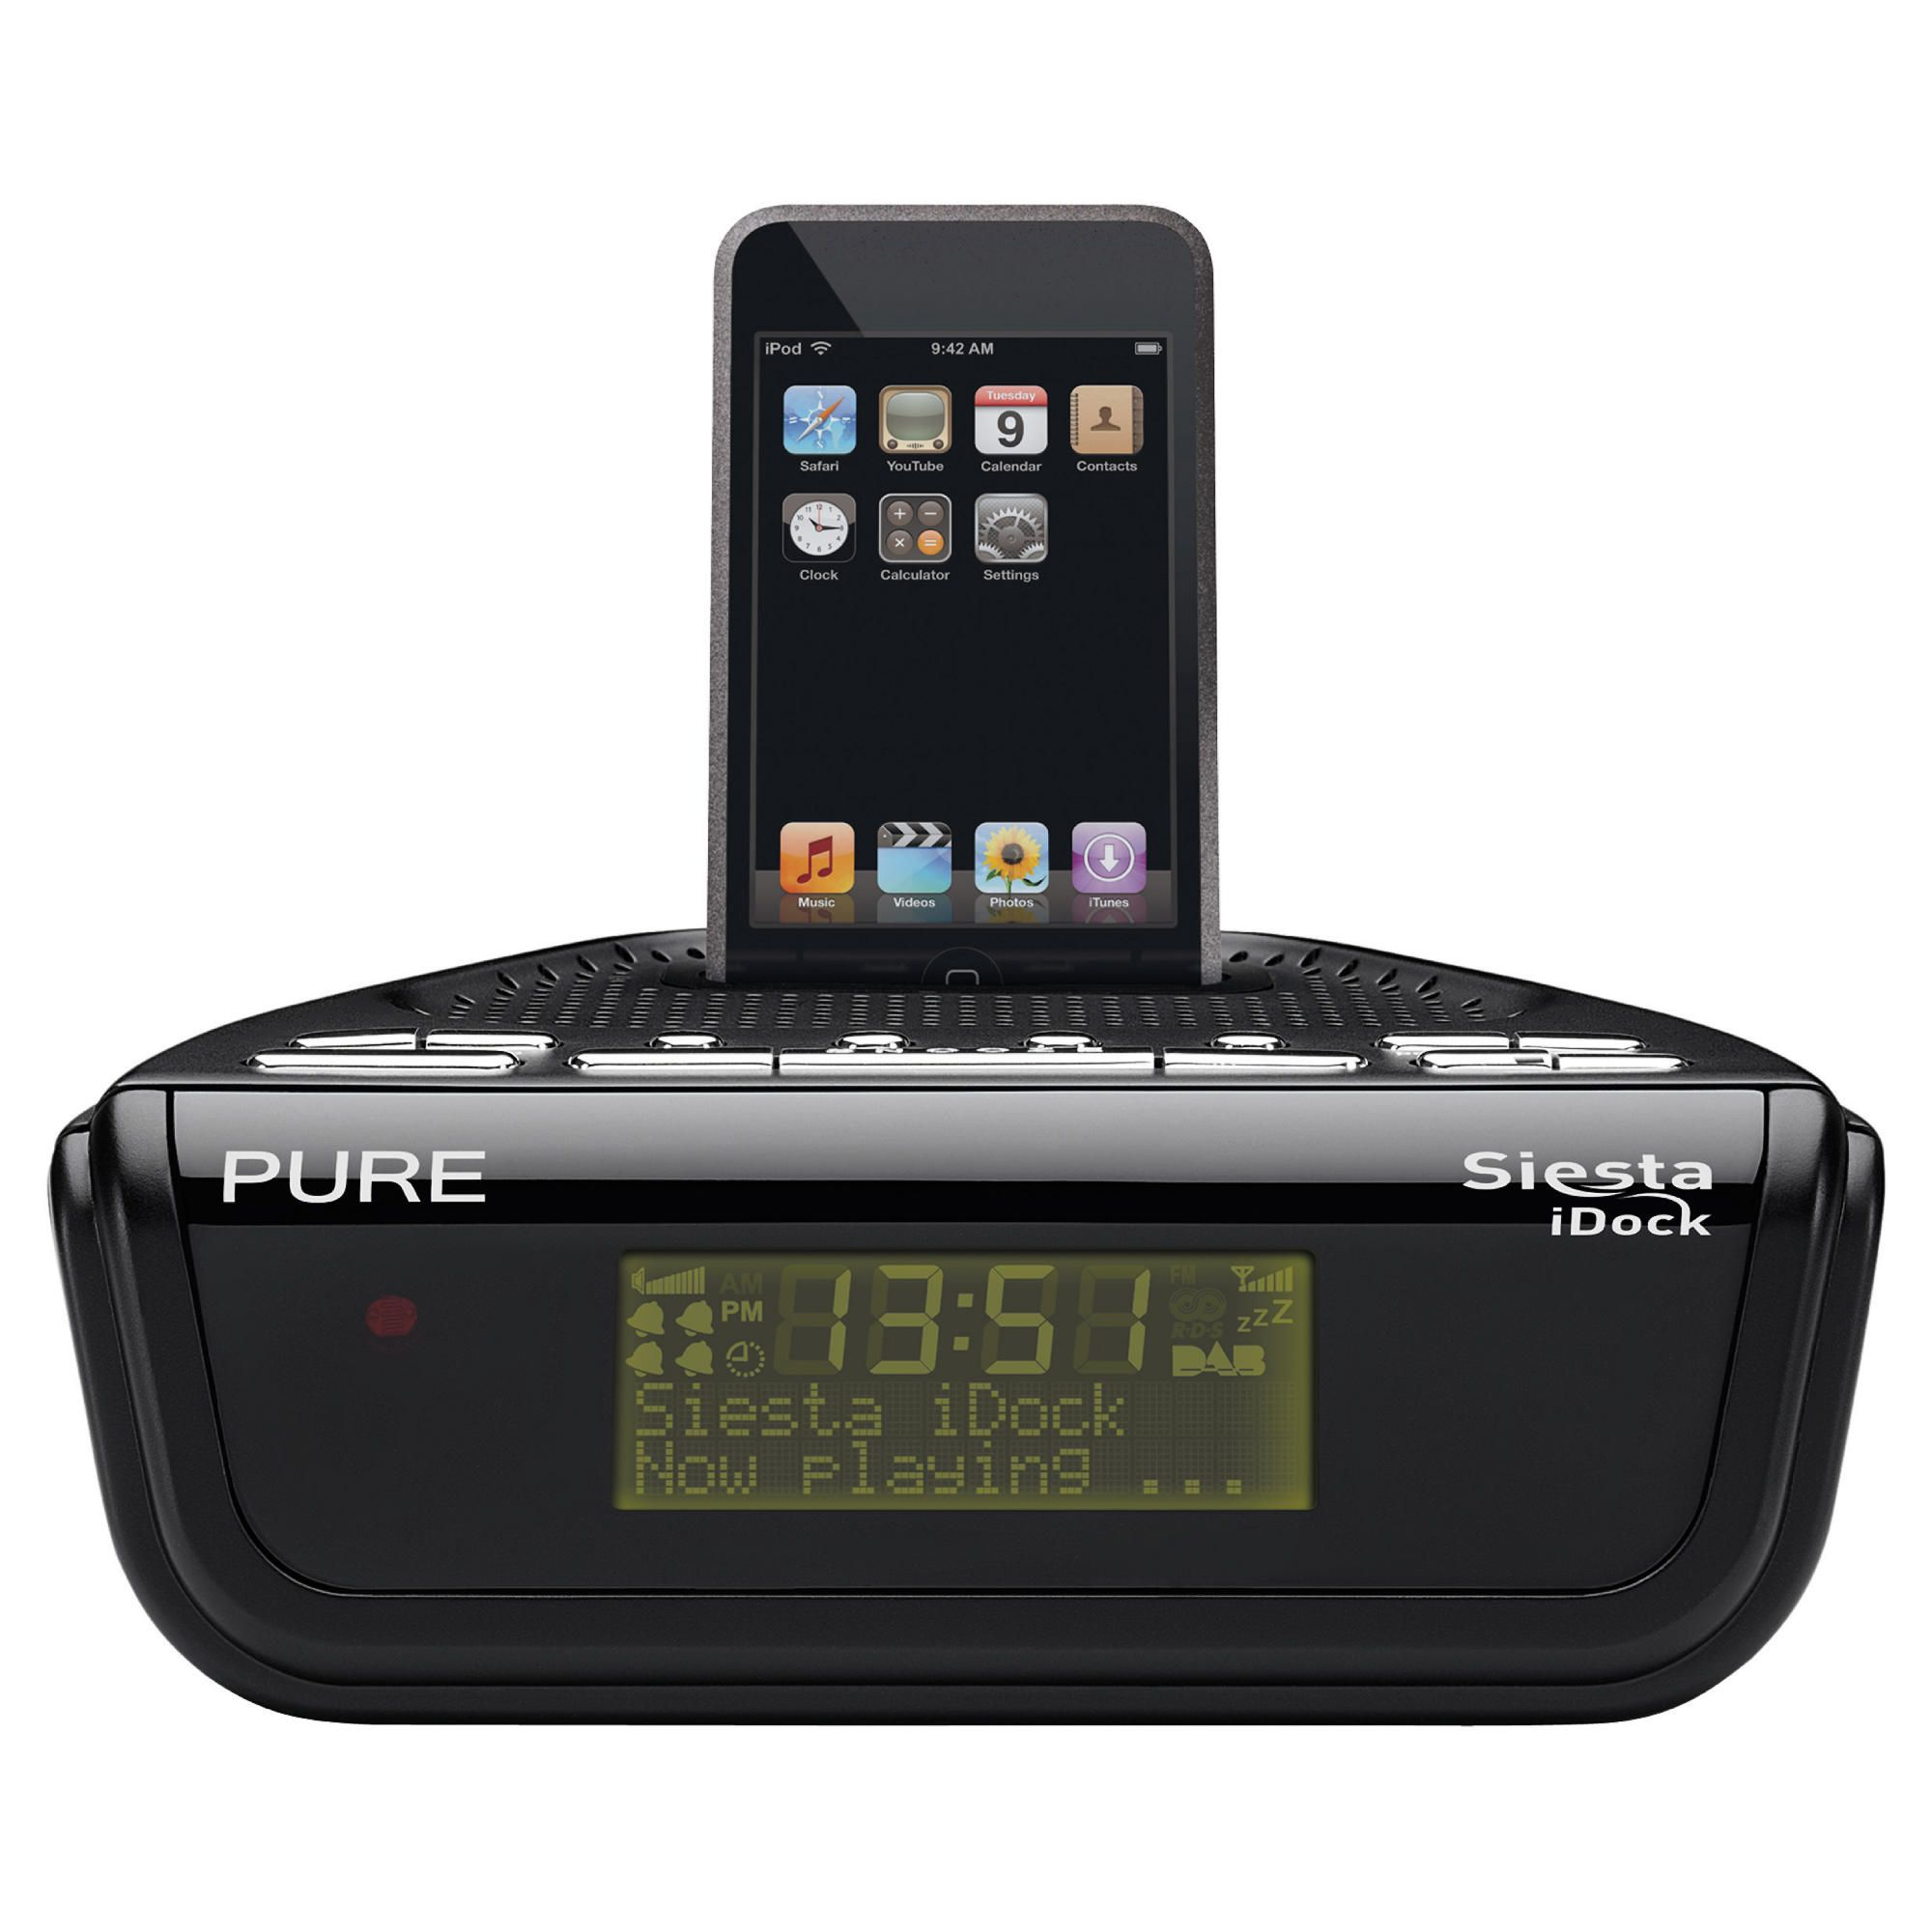 pure siesta idock dab fm ipod alarm radio best deals on dab radio. Black Bedroom Furniture Sets. Home Design Ideas